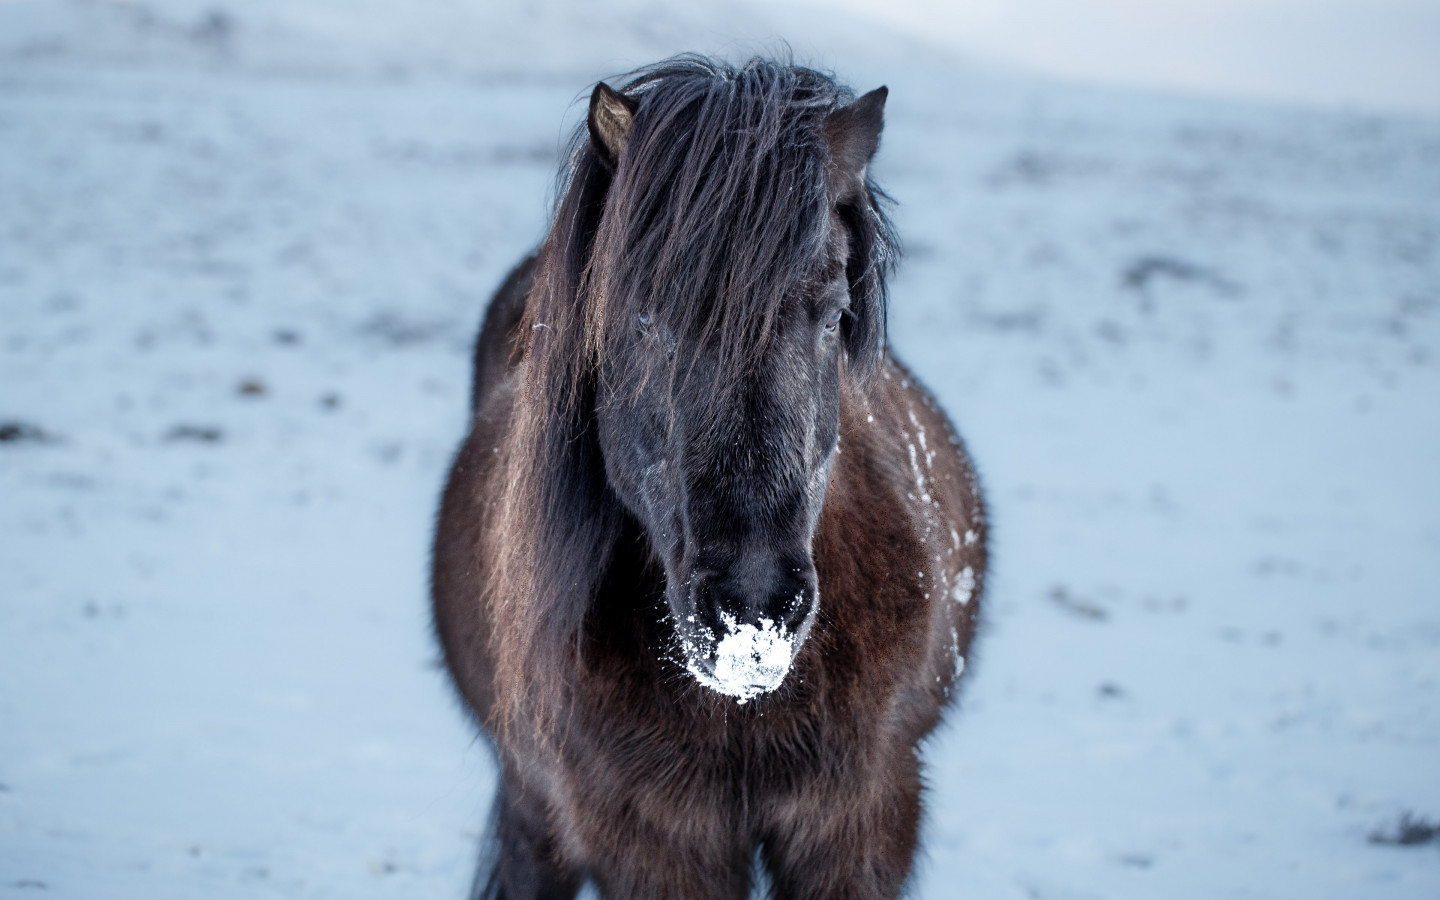 Icelandic horse | 1440x900 wallpaper